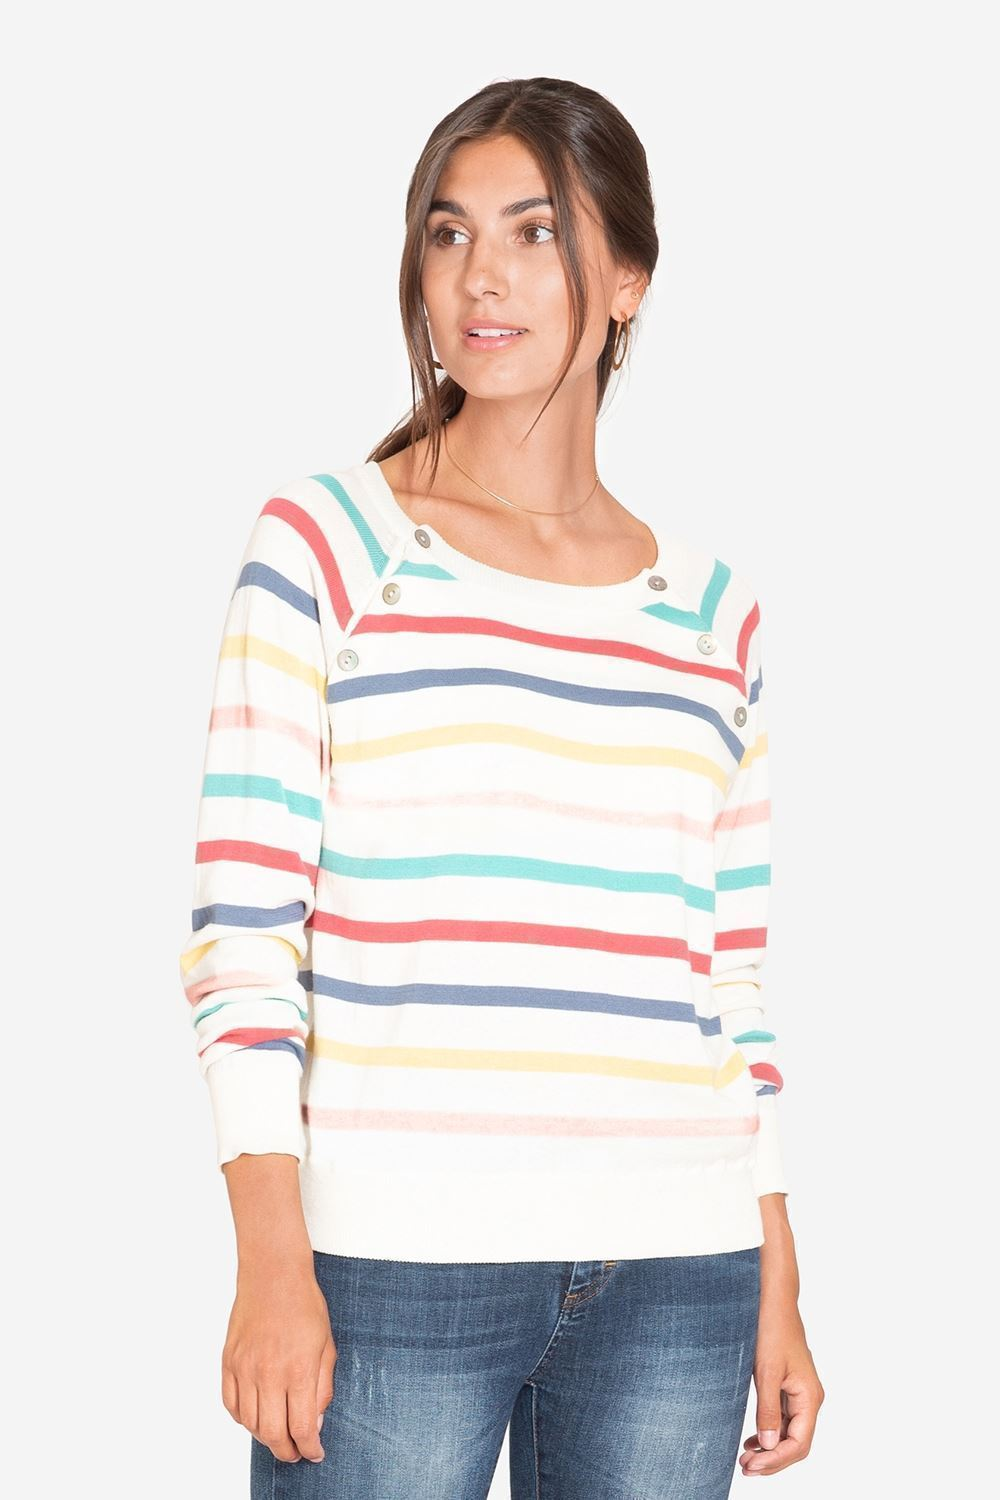 Striped nursing top in loose fit - front view